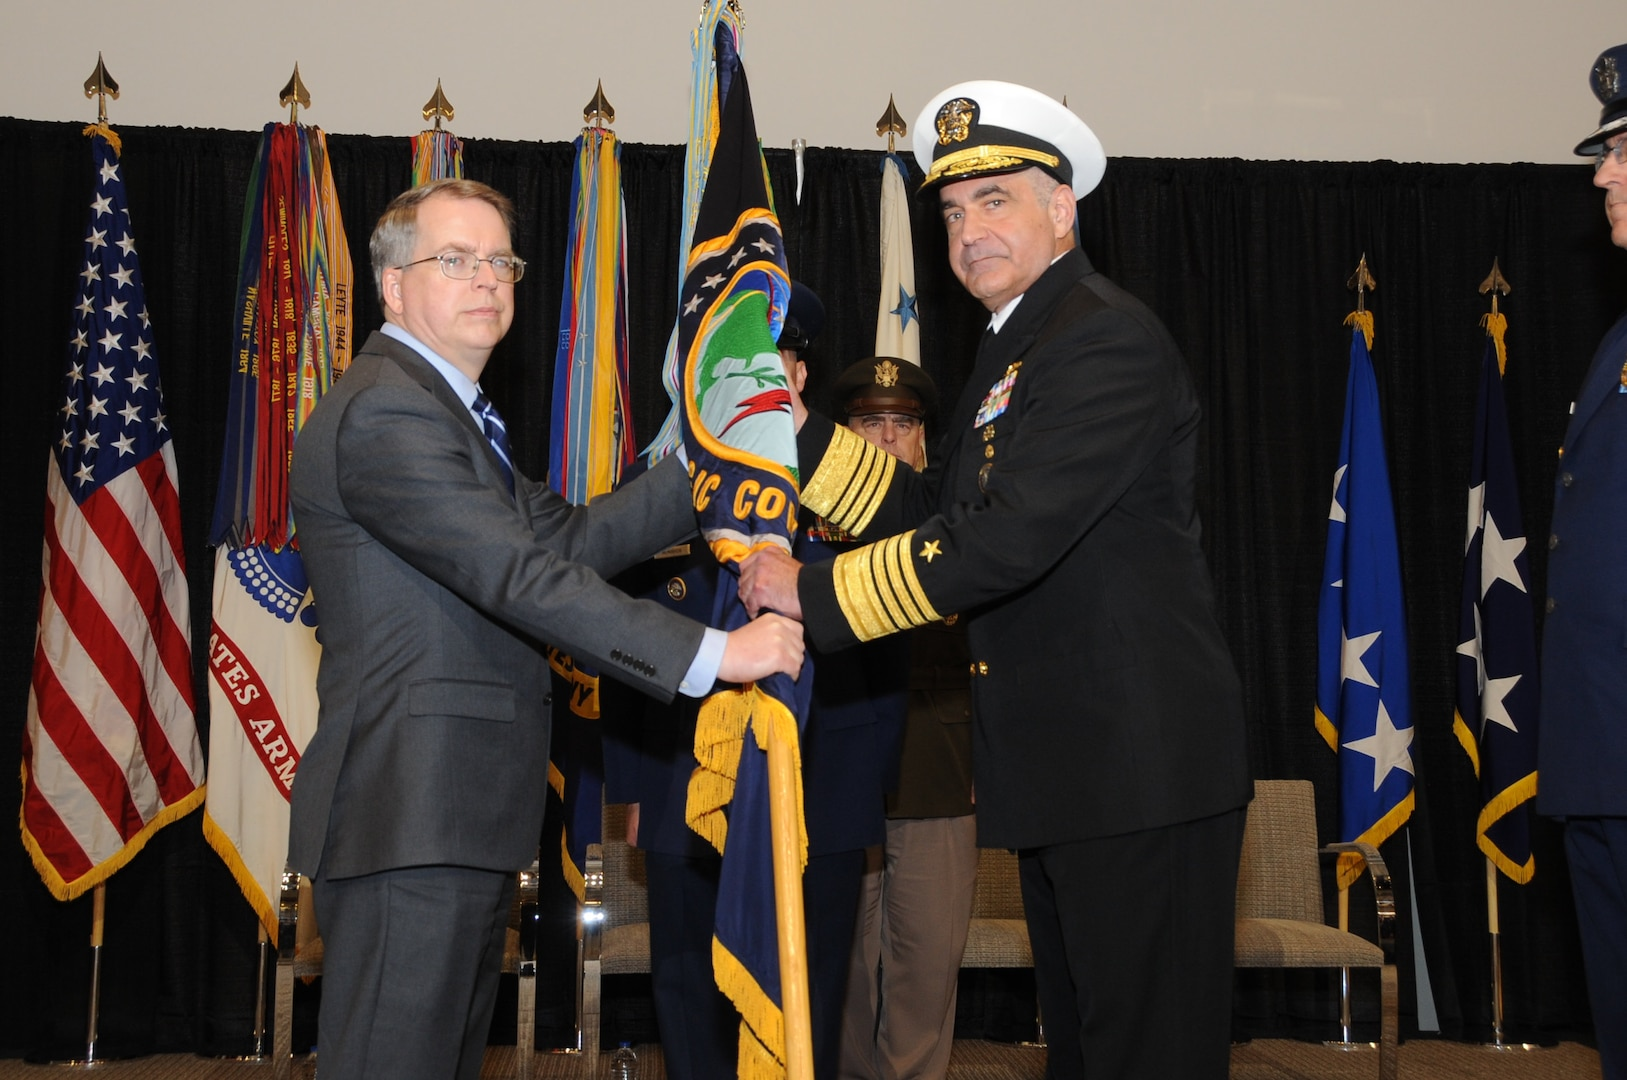 U.S. Navy Adm. Charles A. Richard accepts the U.S. Strategic Command guidon from Deputy Secretary of Defense David L. Norquist as he assumes command of U.S. Strategic Command (USSTRATCOM) during a change of command ceremony at Offutt Air Force Base, Neb., Nov. 18, 2019. Richard comes to USSTRATCOM after serving as the commander of Submarine Forces; commander of Submarine Force Atlantic and commander of Allied Submarine Command at Naval Station Norfolk, Va. USSTRATCOM has global responsibilities assigned through the Unified Command Plan that include strategic deterrence, nuclear operations, joint electromagnetic spectrum operations, global strike, missile defense, and analysis and targeting. (U.S. Air Force photo by Steve Cunningham)